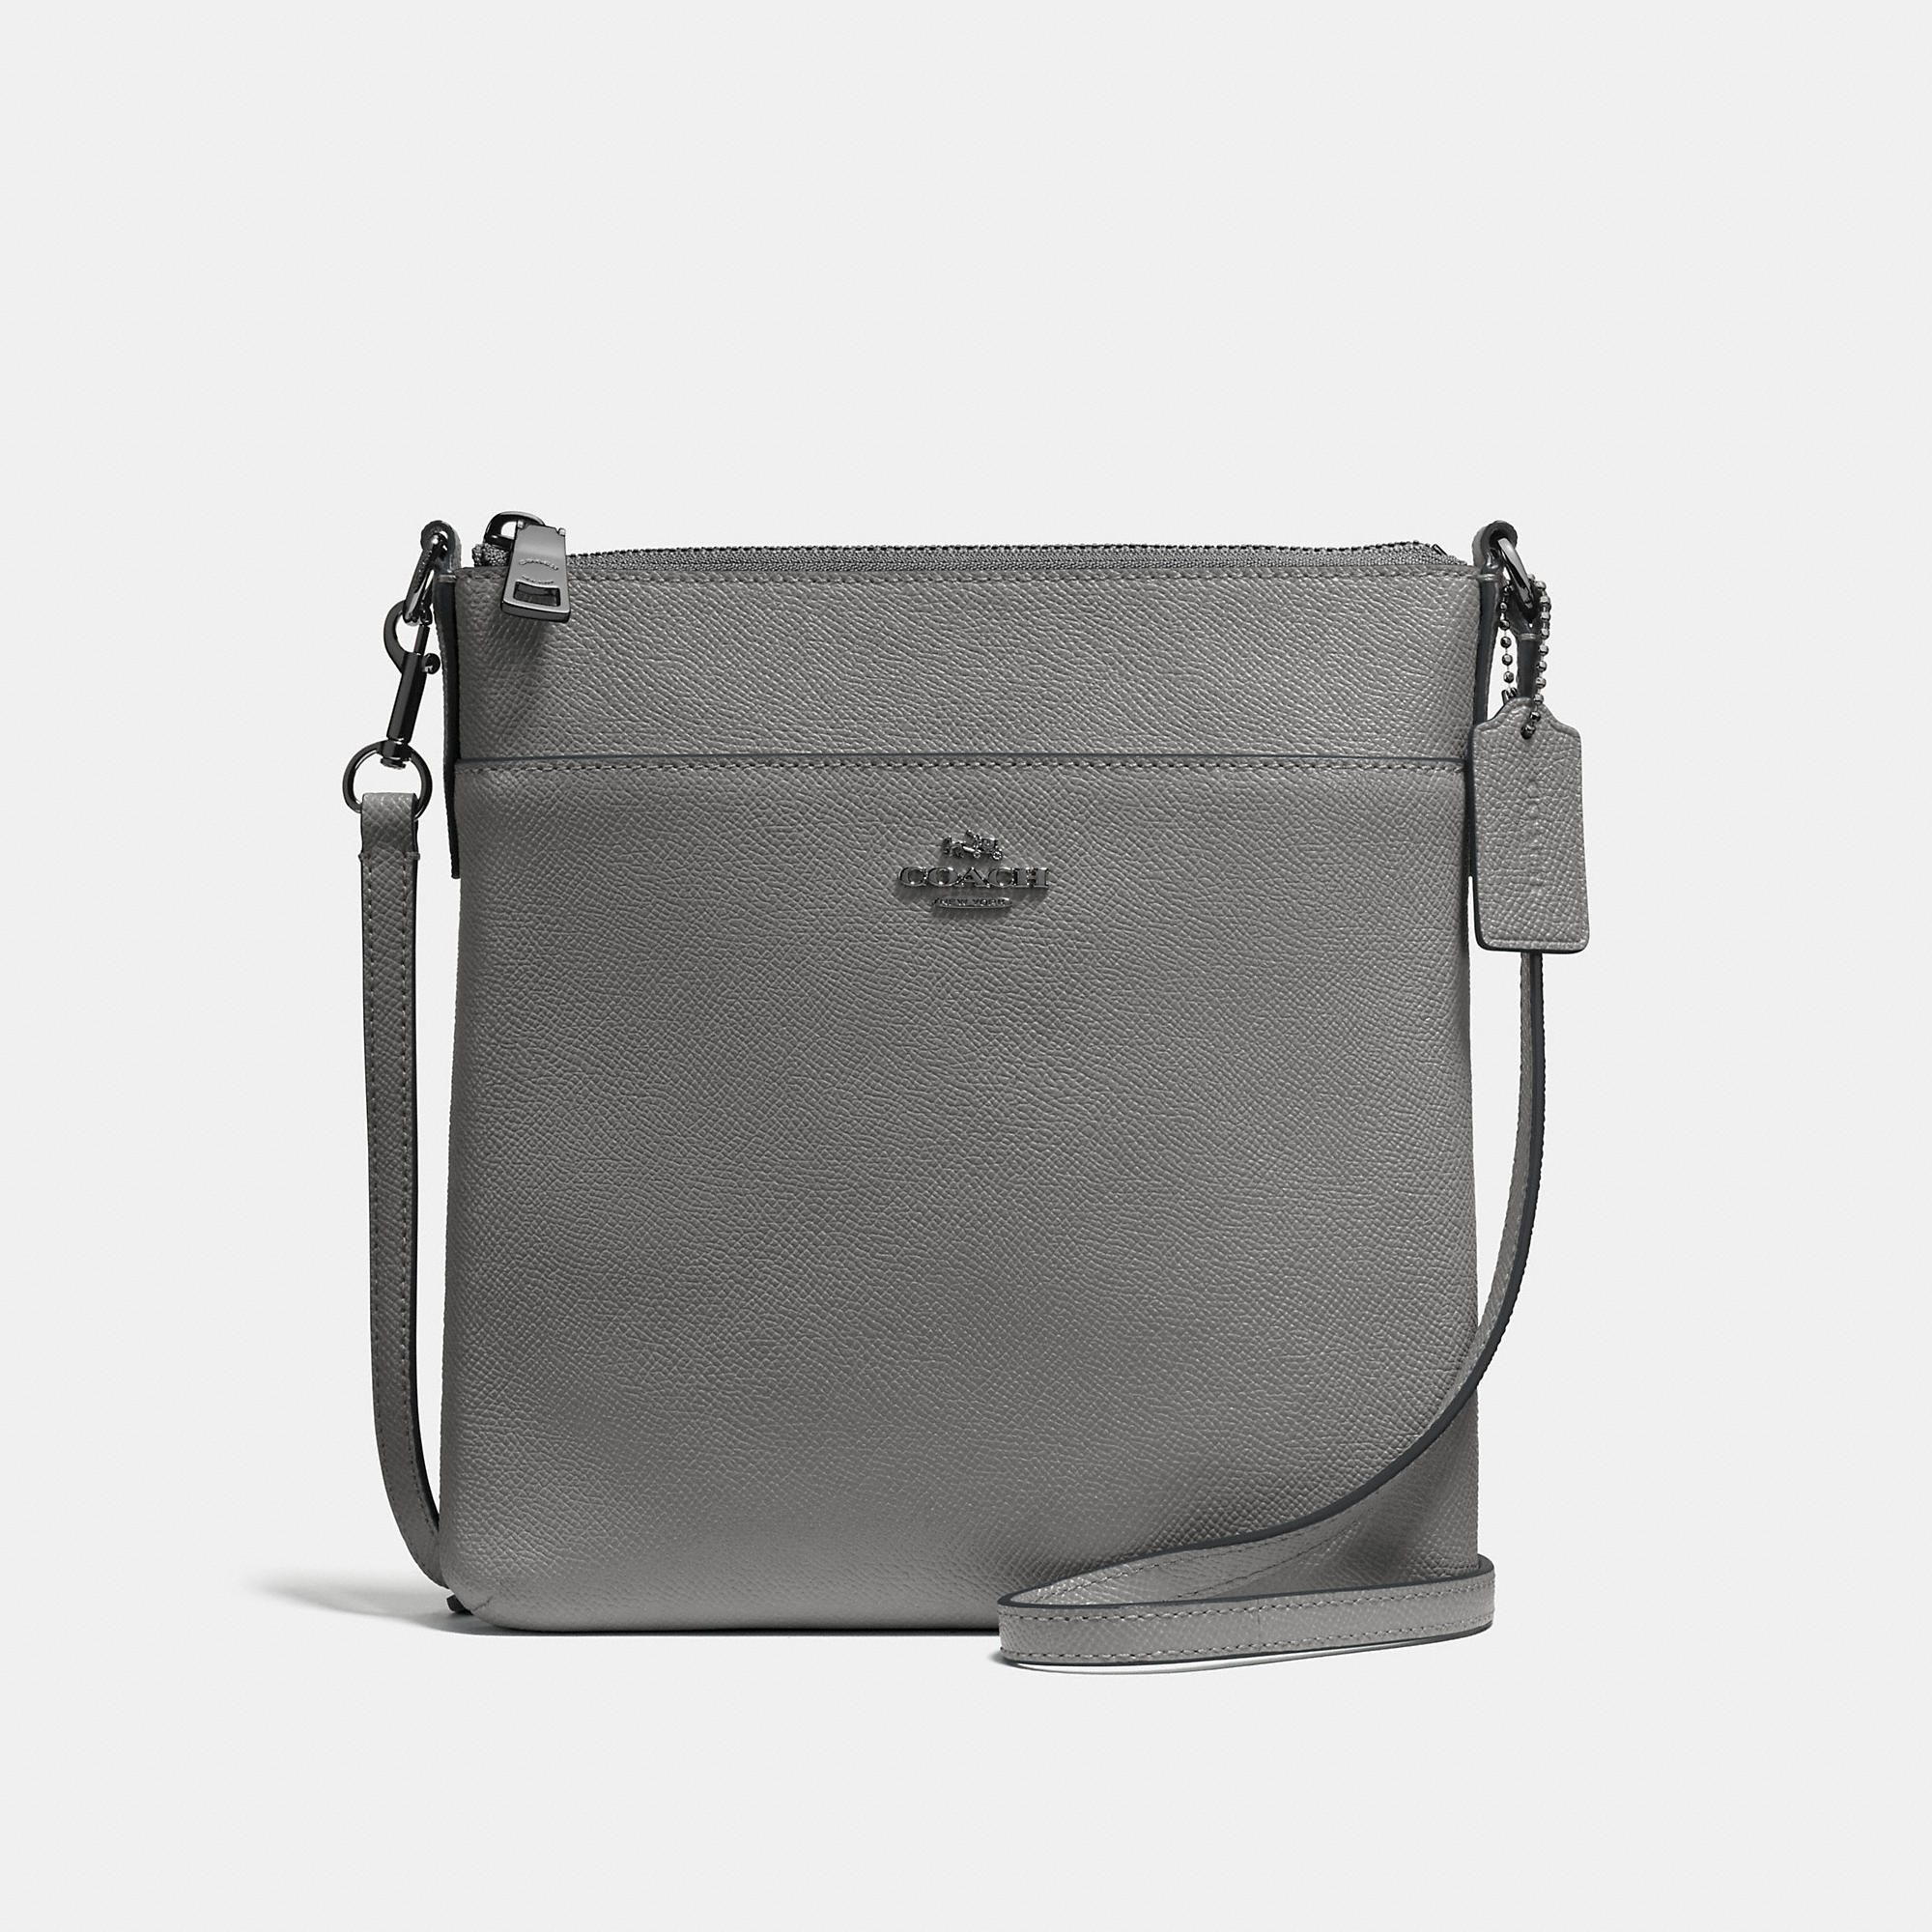 Coach Messenger Crossbody